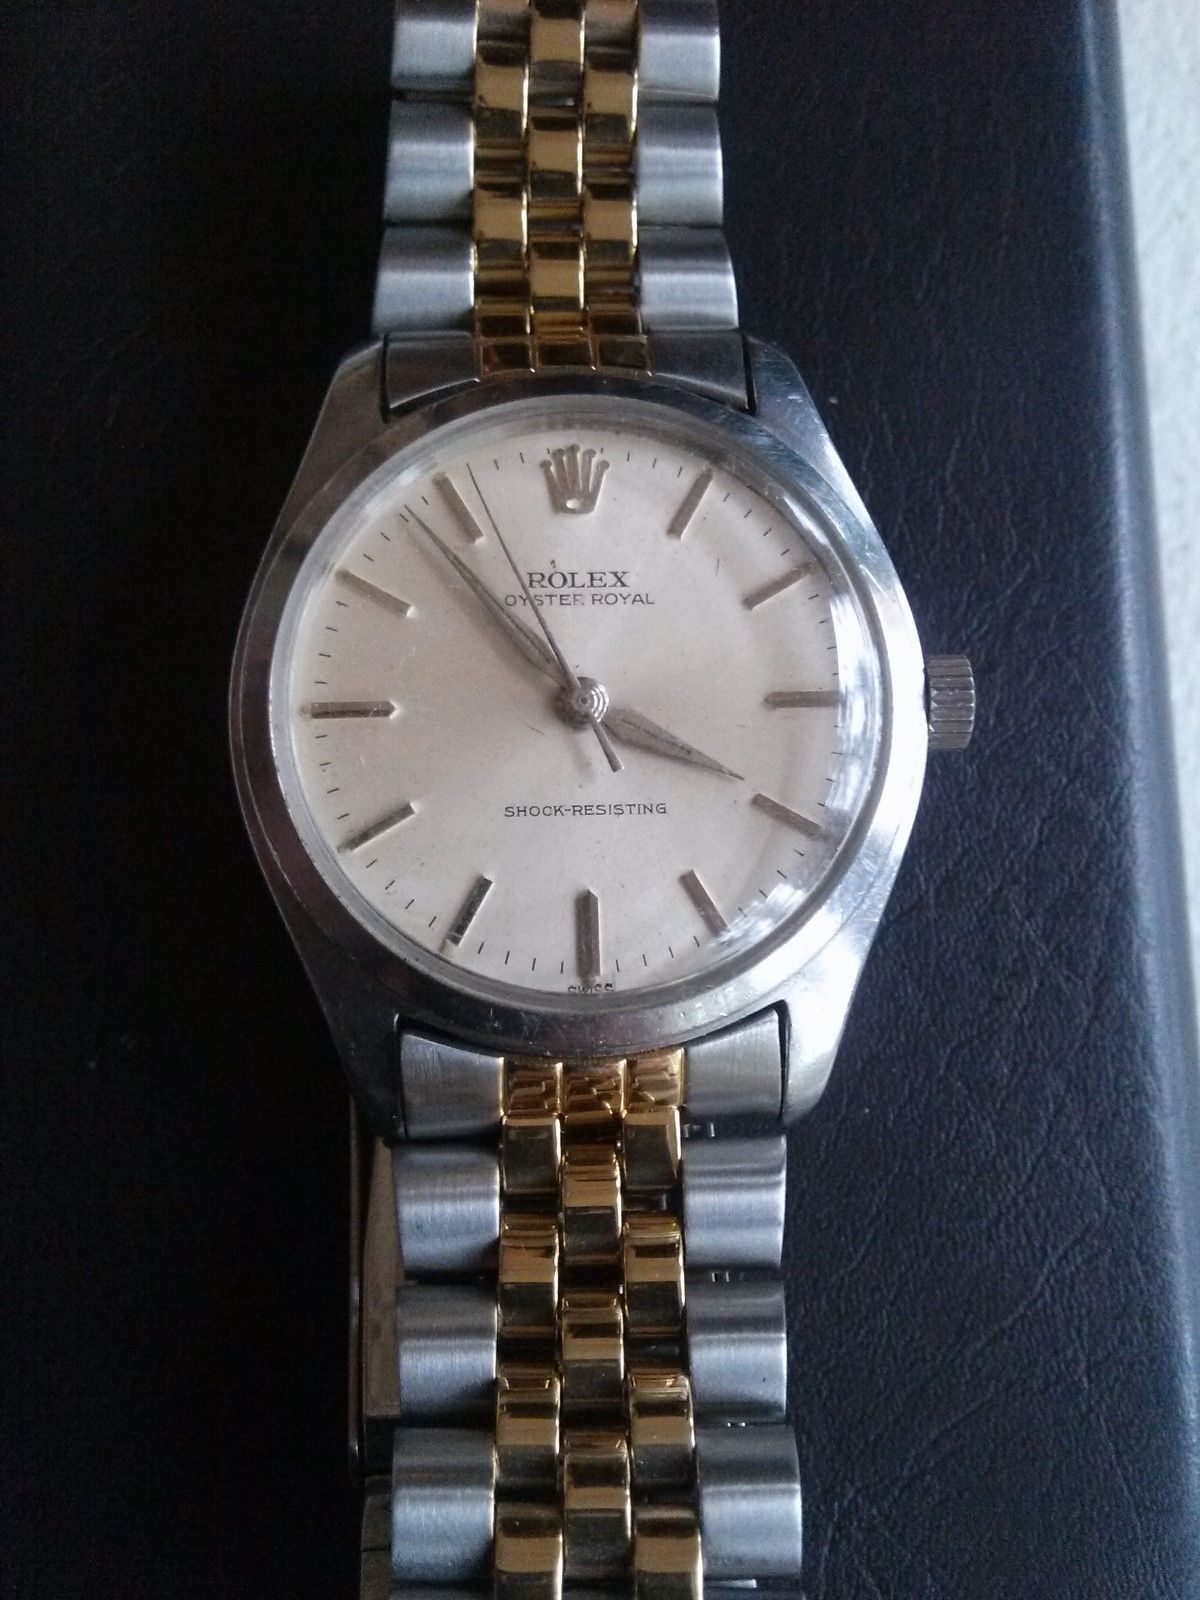 ROLEX OYSTER ROYAL AUTOMATIC WATCH REF 6444 WINDING SHOCK-RESISTING  TWO BANDS! https://t.co/HFthQEtEa9 https://t.co/rwgXrpEl9d